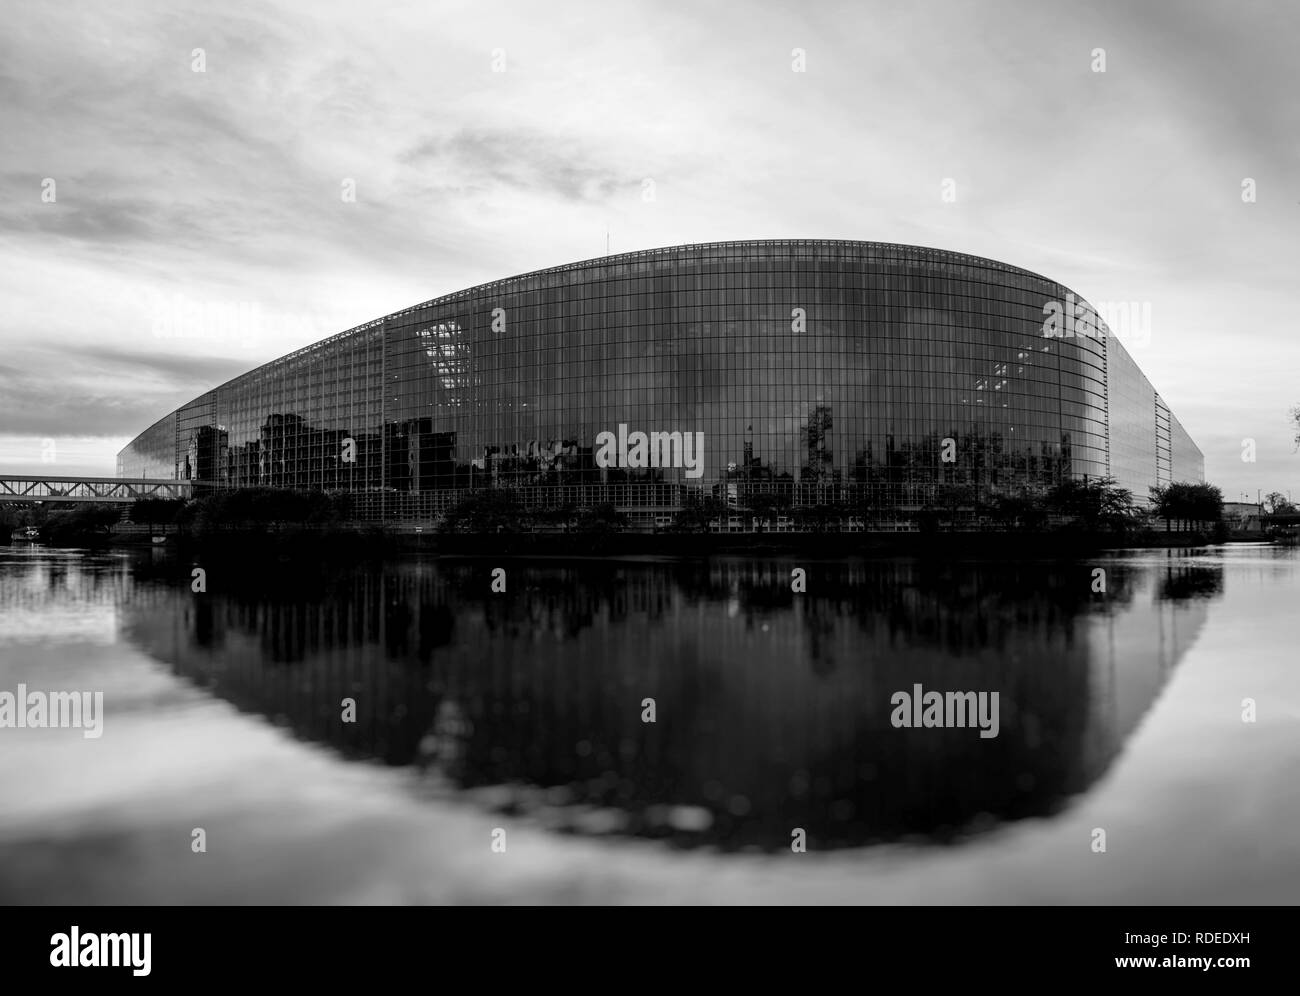 STRASBOURG, FRANCE - MAR 31 2017: Black and white image of South facade of the European Parliament in Strasbourg with the intersection of the Ill and Marne-Rhine Canal at dusk. The European Parliament or EU Parliament or the EP is the directly elected parliamentary institution of the European Union EU  - Stock Image